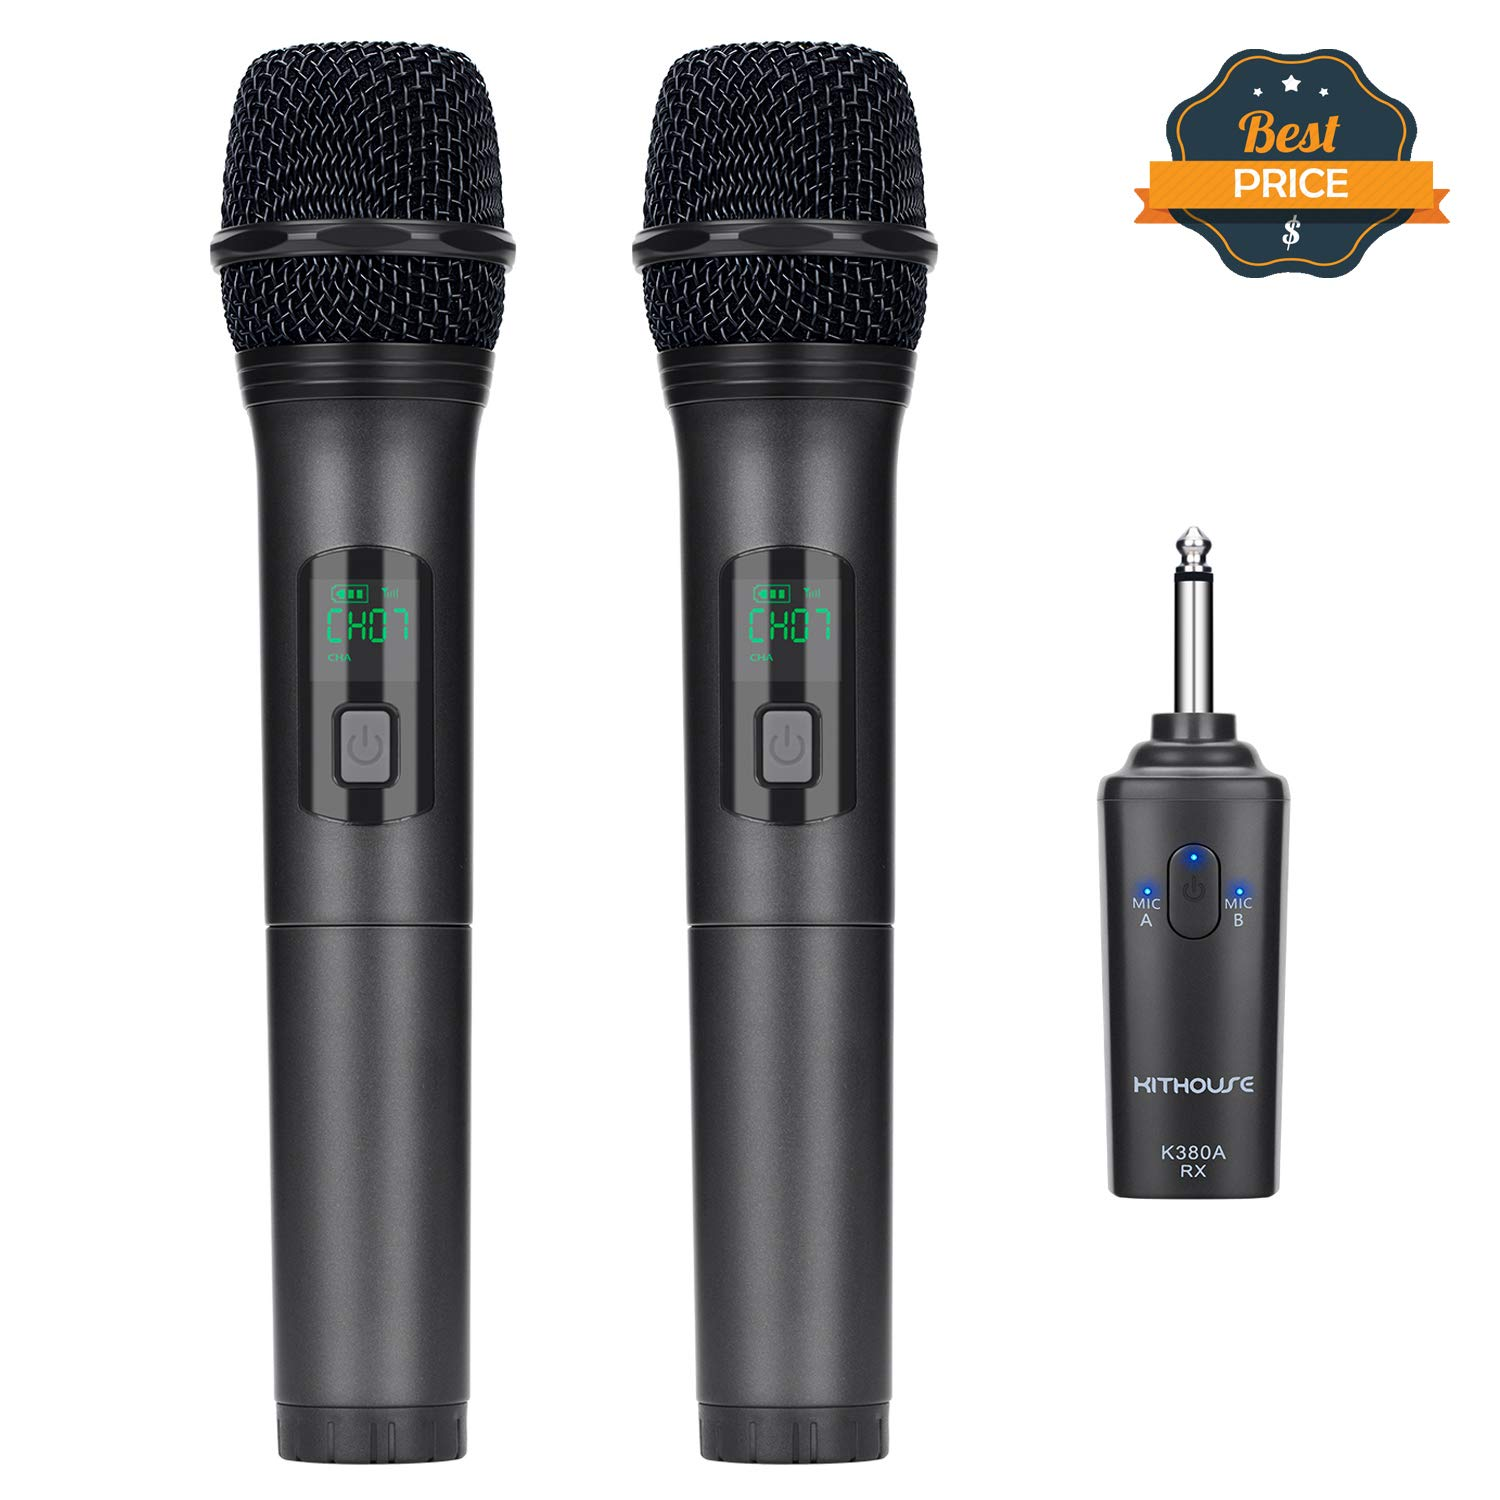 Kithouse K380A Wireless Microphone Karaoke Microphone Wireless Mic Dual With Rechargeable Bluetooth Receiver System Set - UHF Handheld Cordless Microphone For Singing Speech Church(Elegant Black) by KITHOUSE